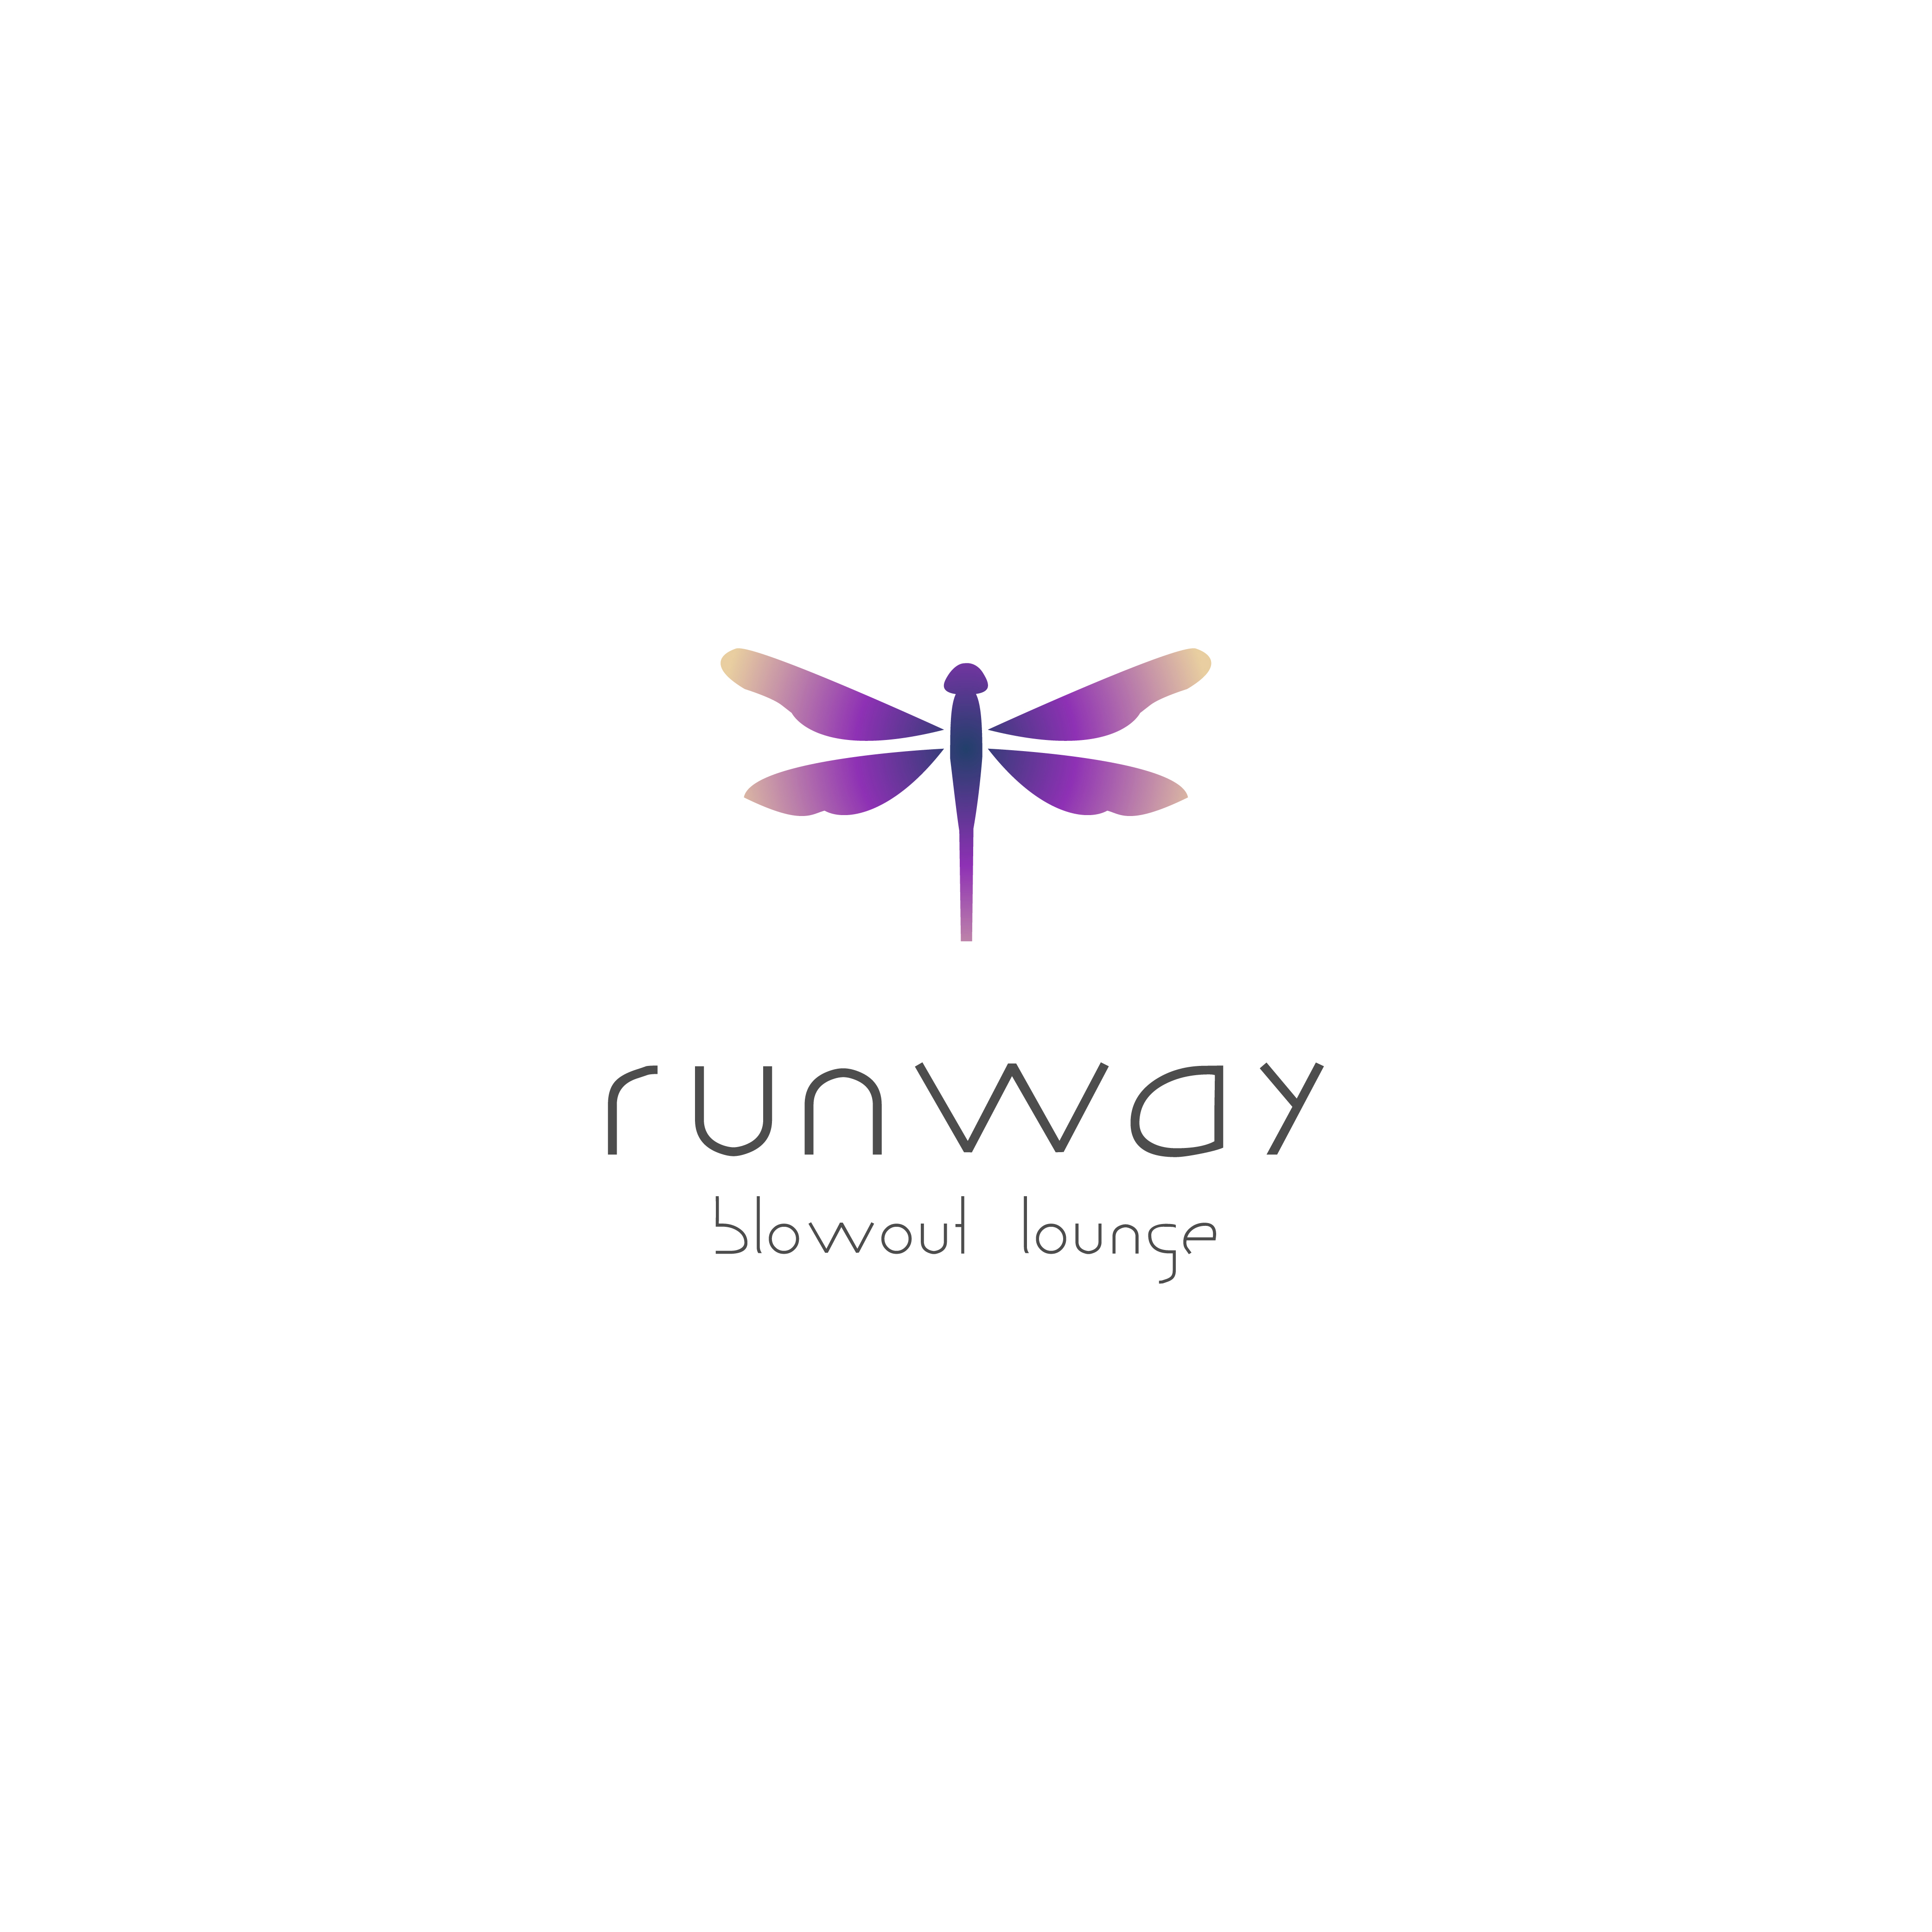 Runway Blowout Lounge